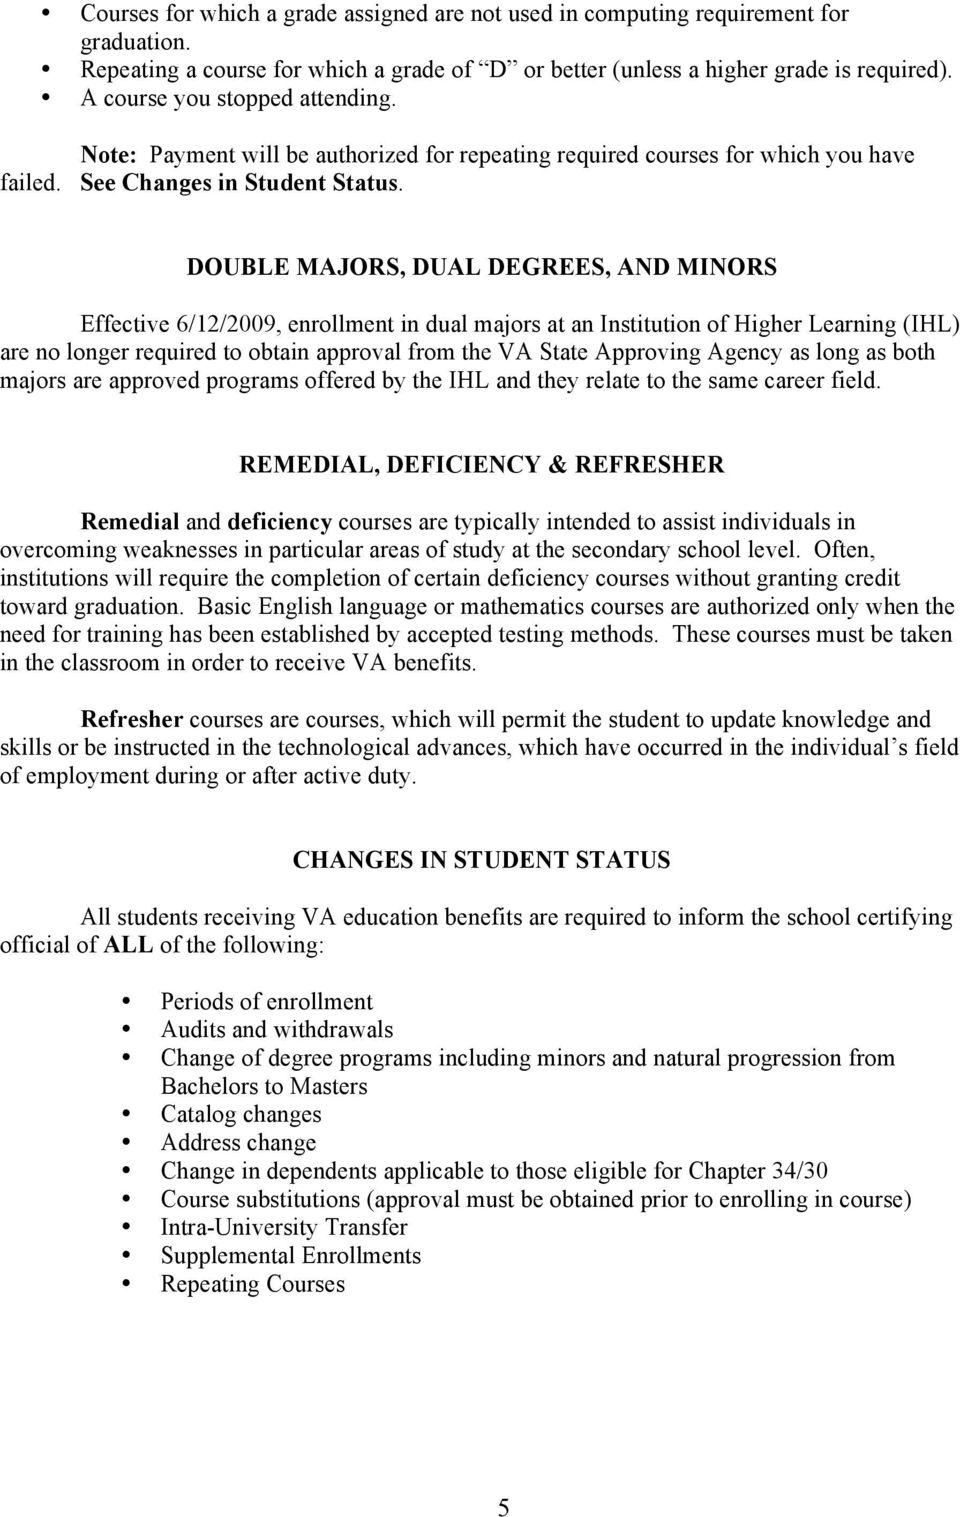 DOUBLE MAJORS, DUAL DEGREES, AND MINORS Effective 6/12/2009, enrollment in dual majors at an Institution of Higher Learning (IHL) are no longer required to obtain approval from the VA State Approving